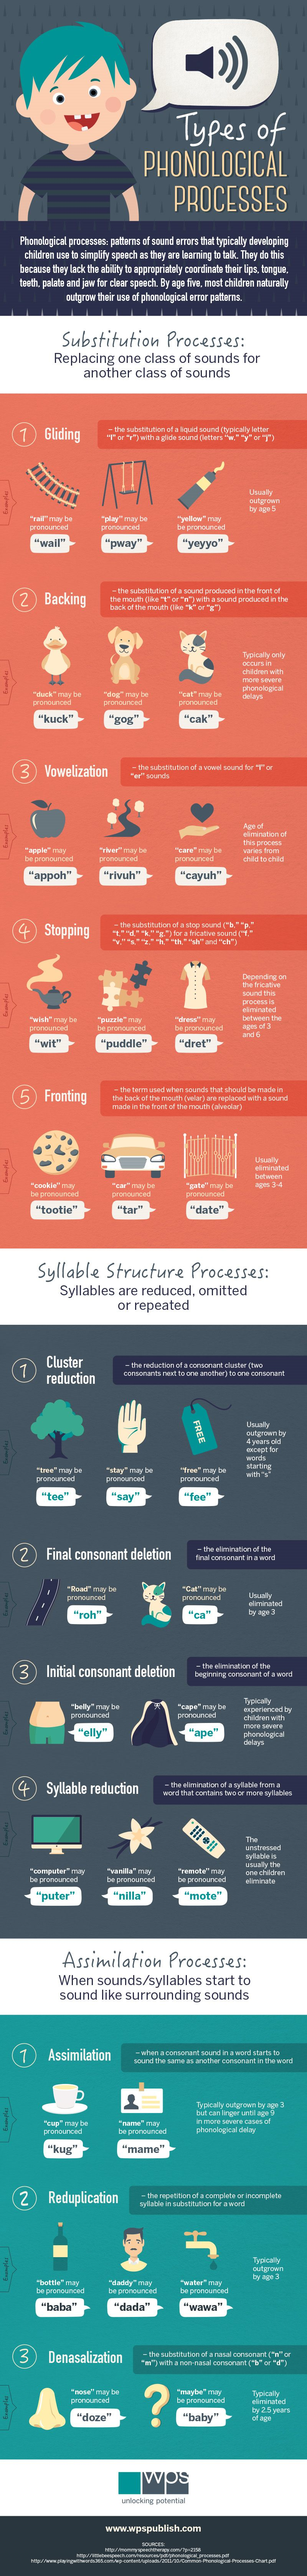 Types Of Phonological Processes V7